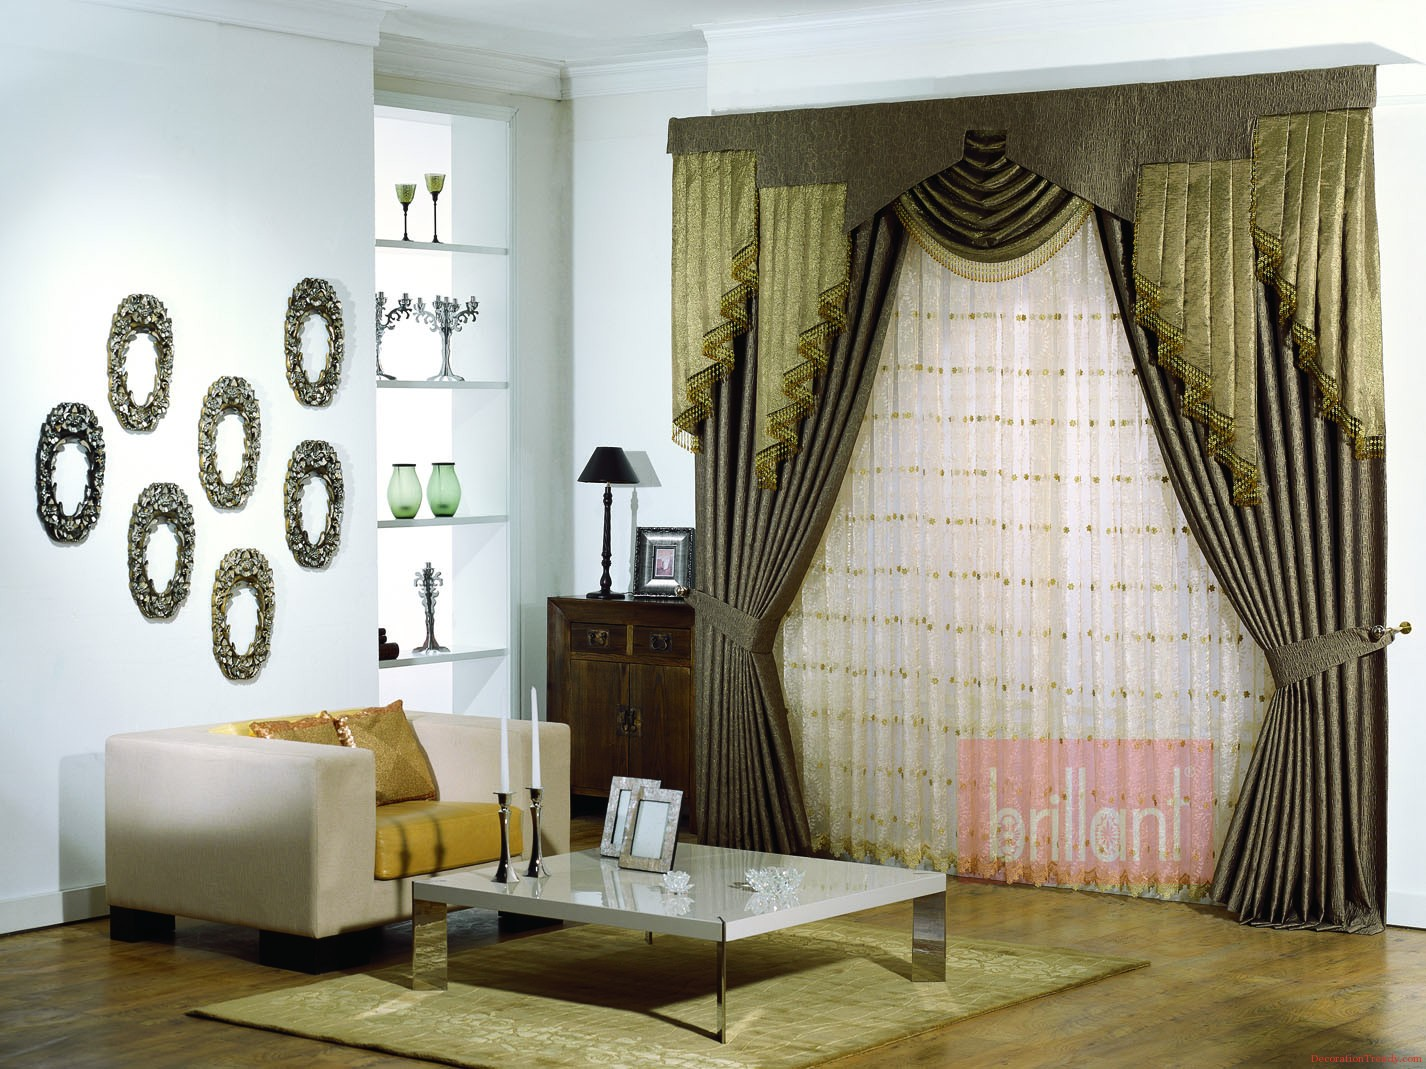 Image of: Living Room Curtains Valance